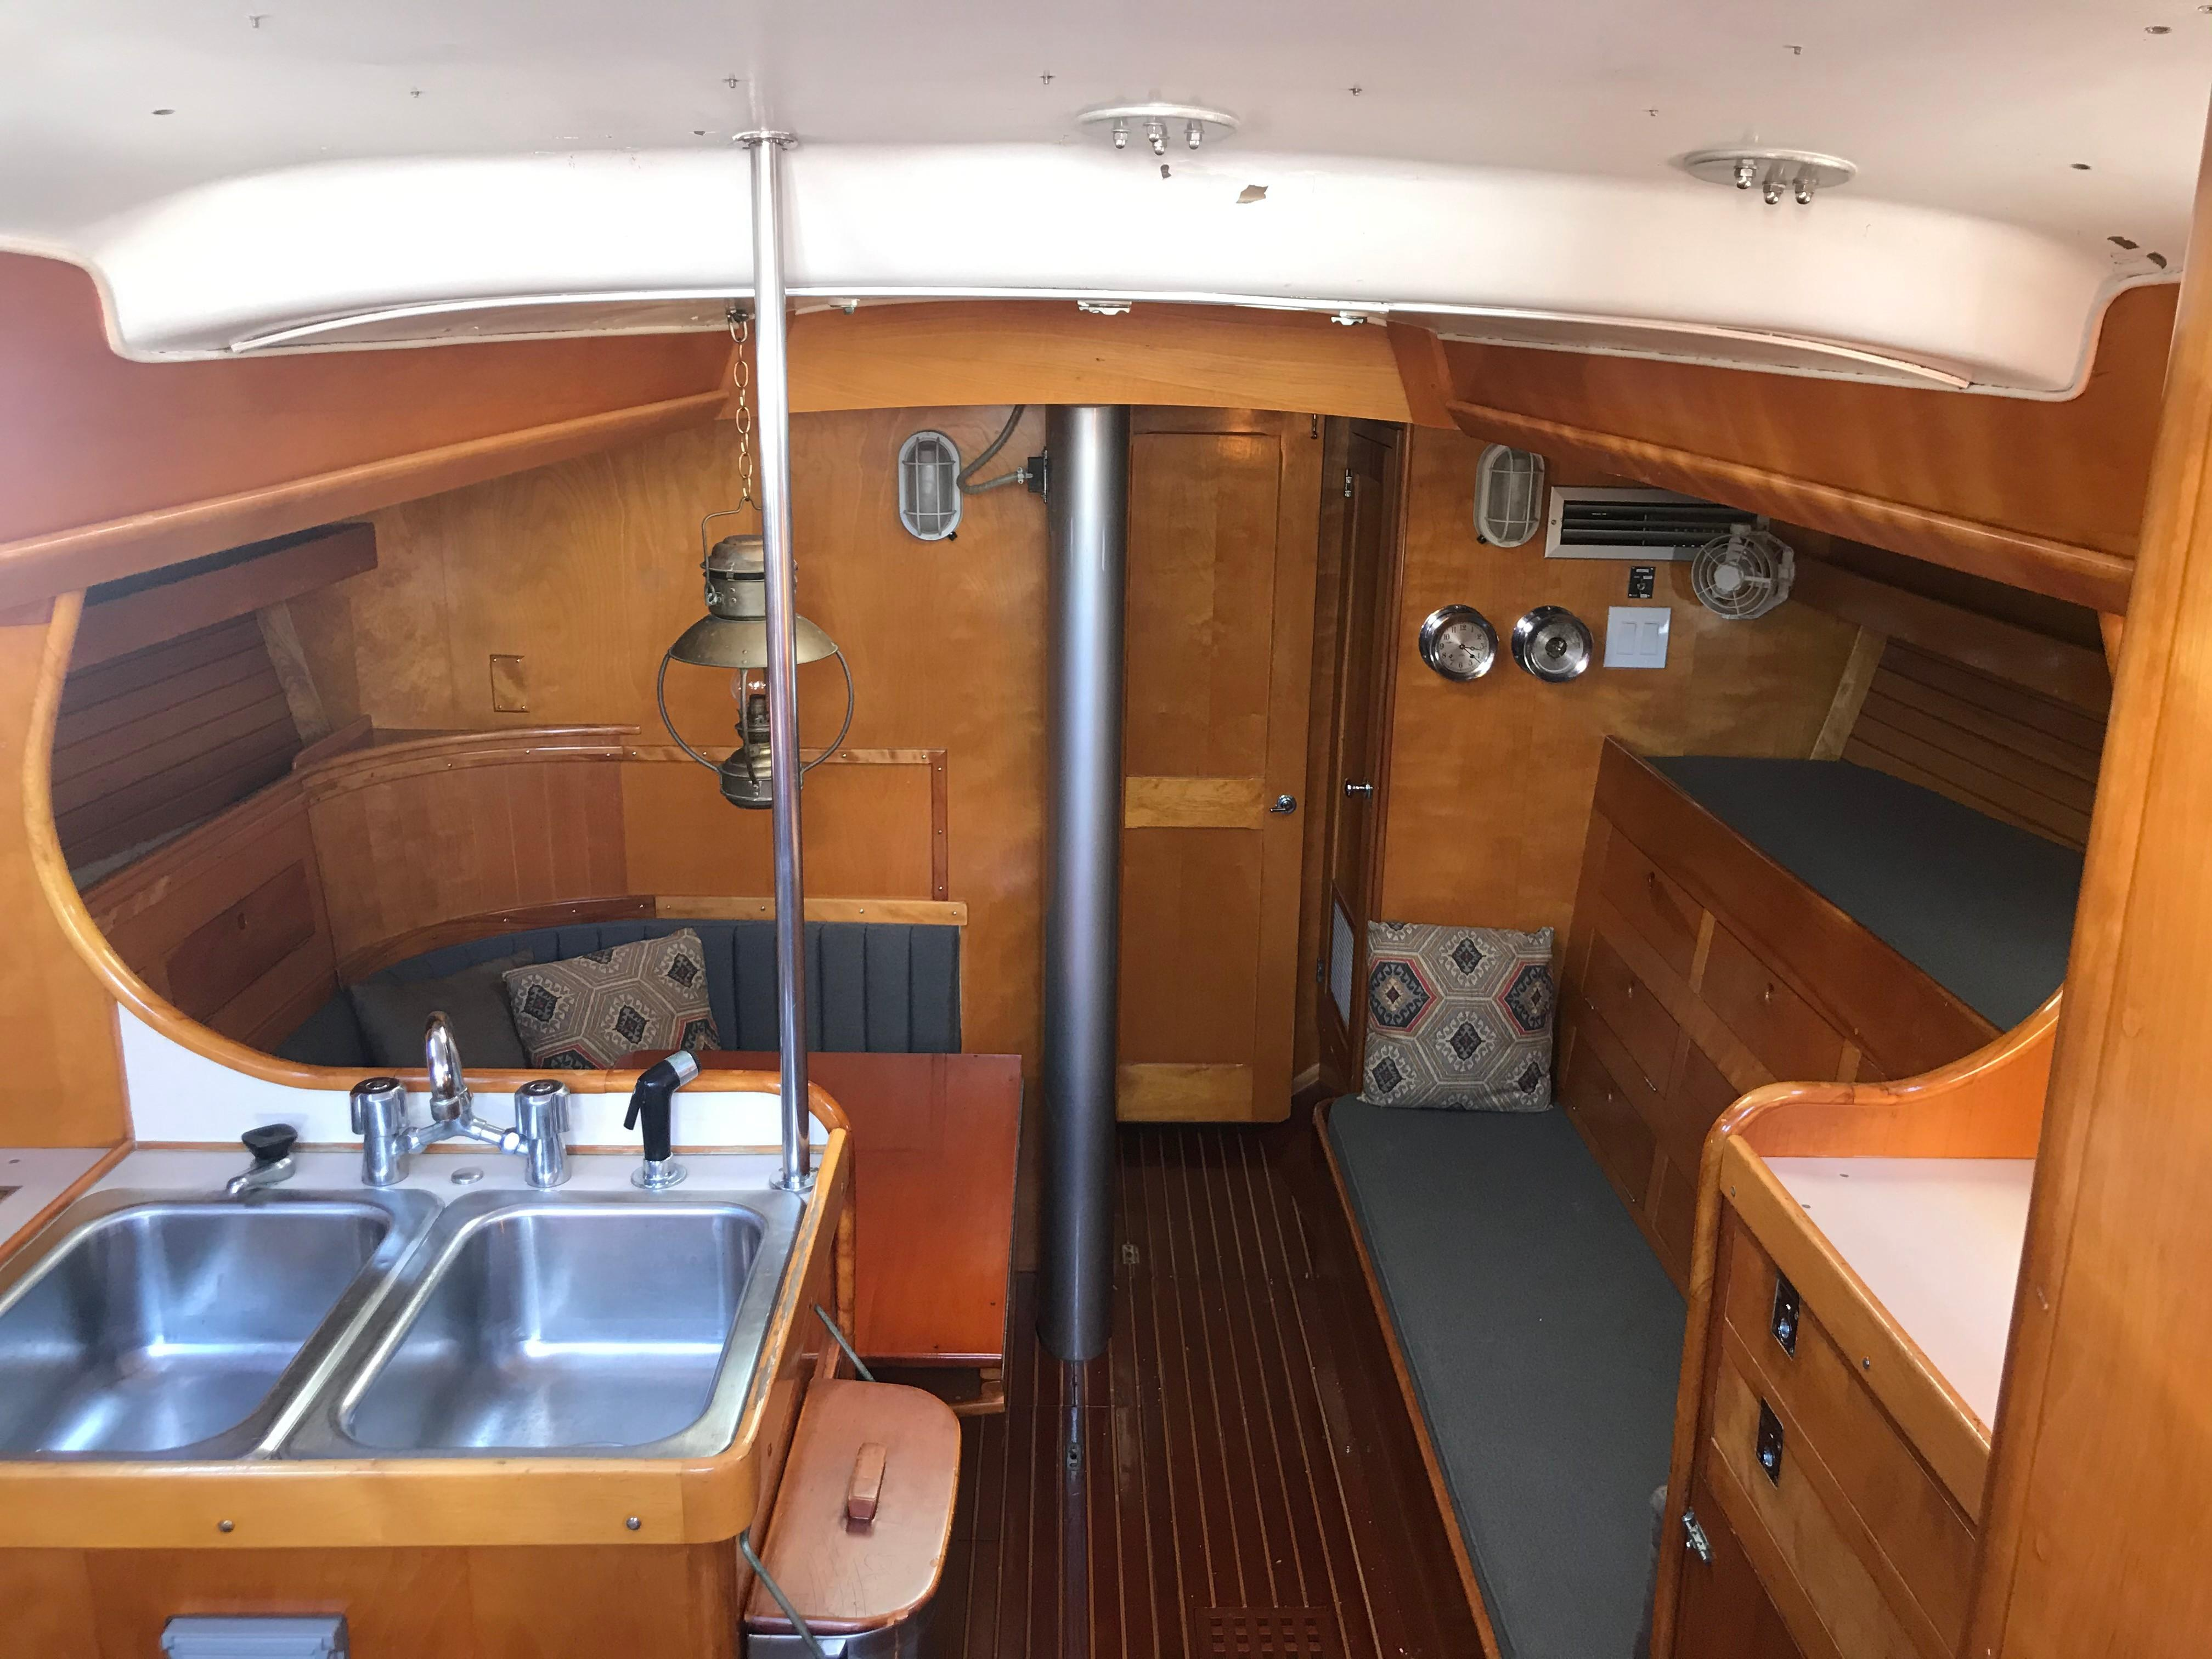 View forward from Companionway